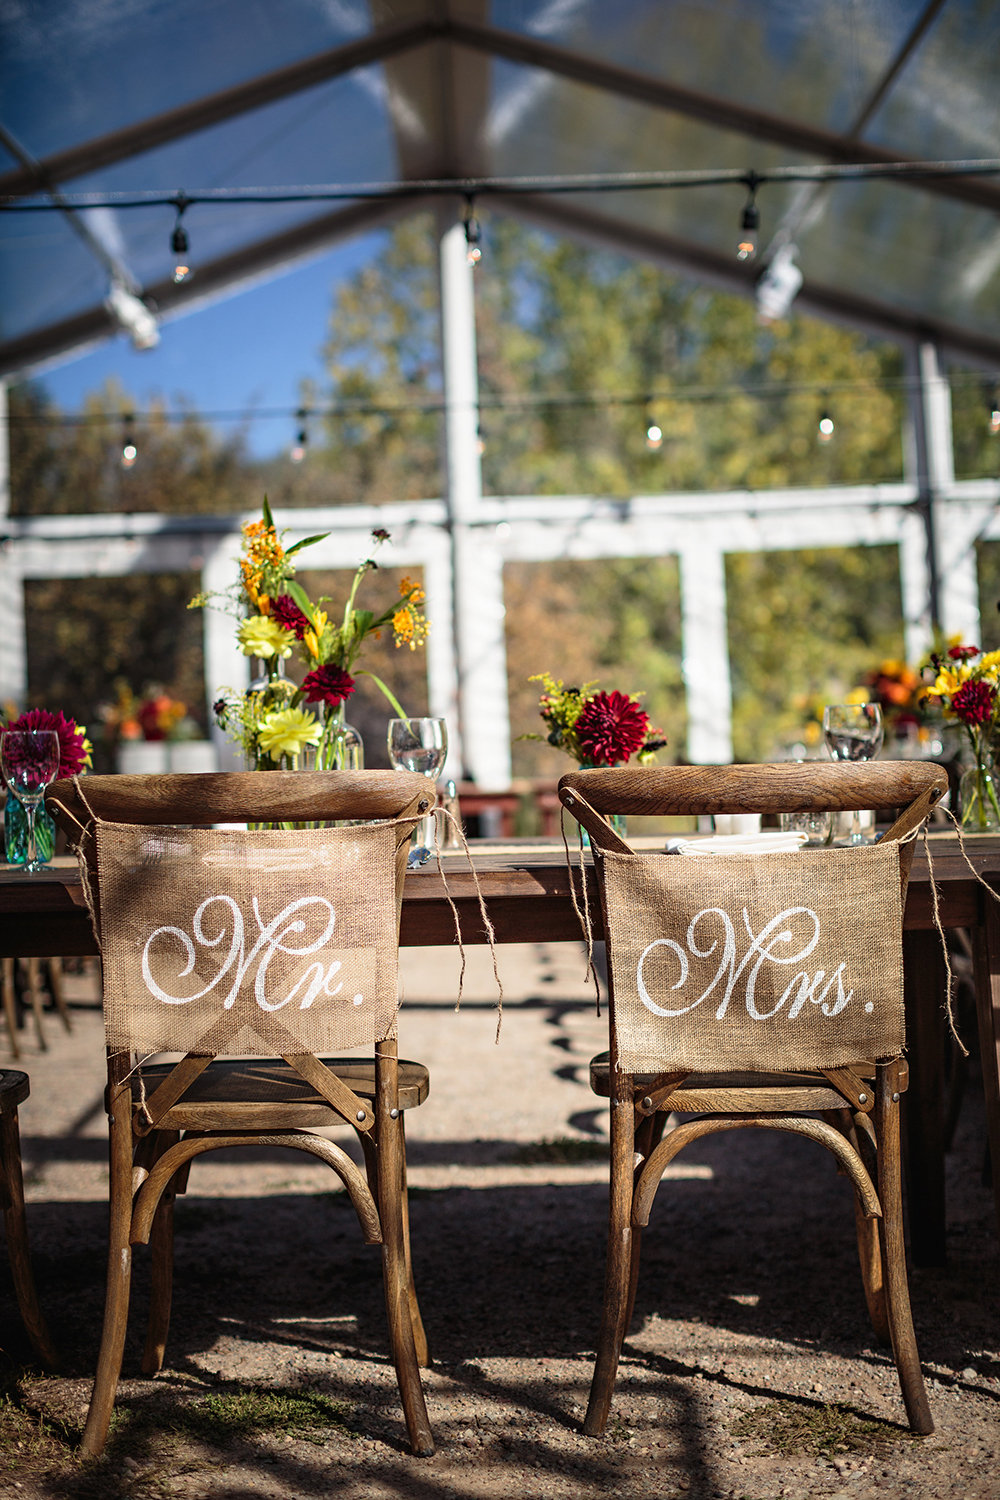 10 Ideas For A Chic Country-Themed Wedding